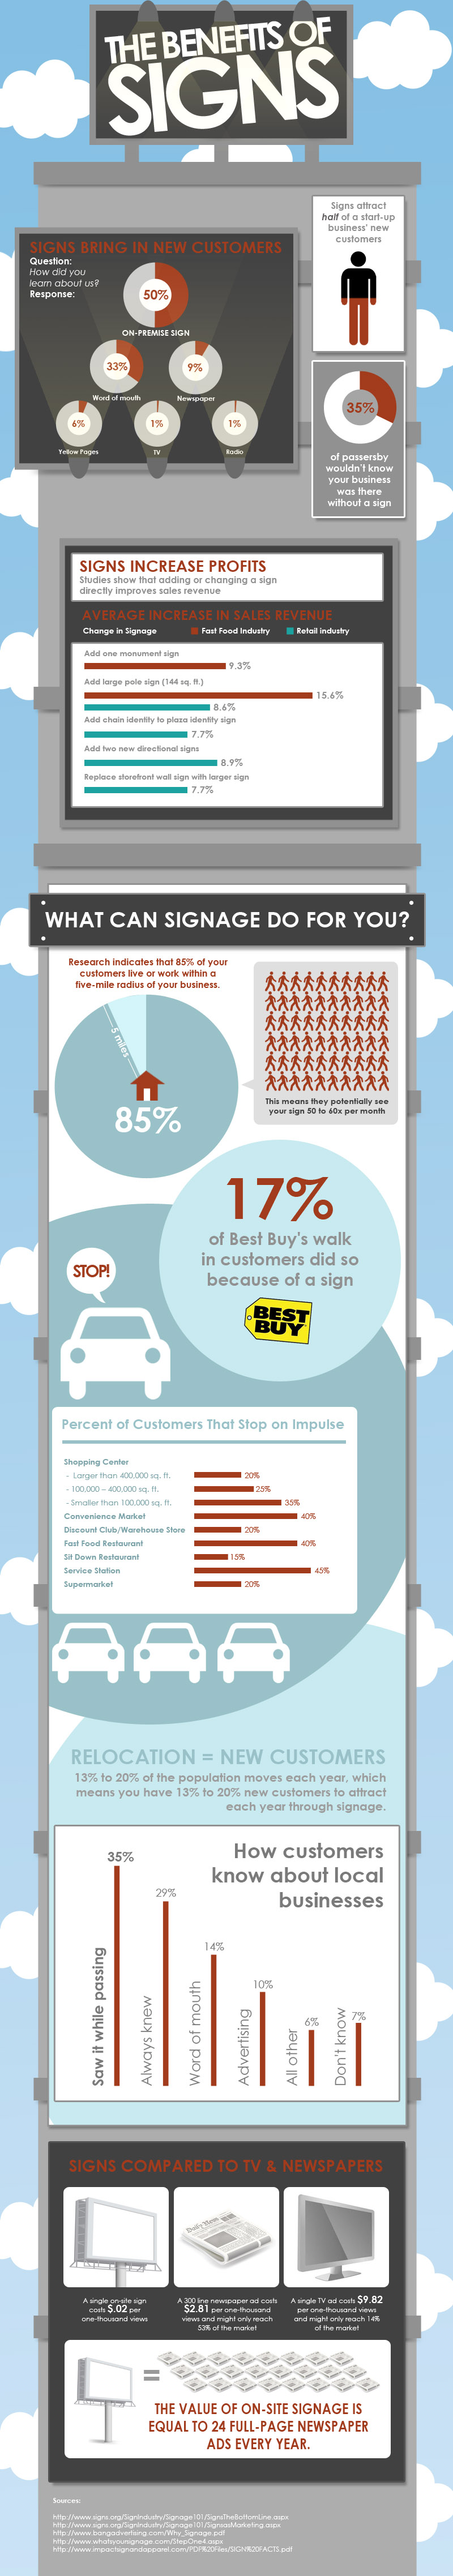 The Benefit of Signs [infographic]